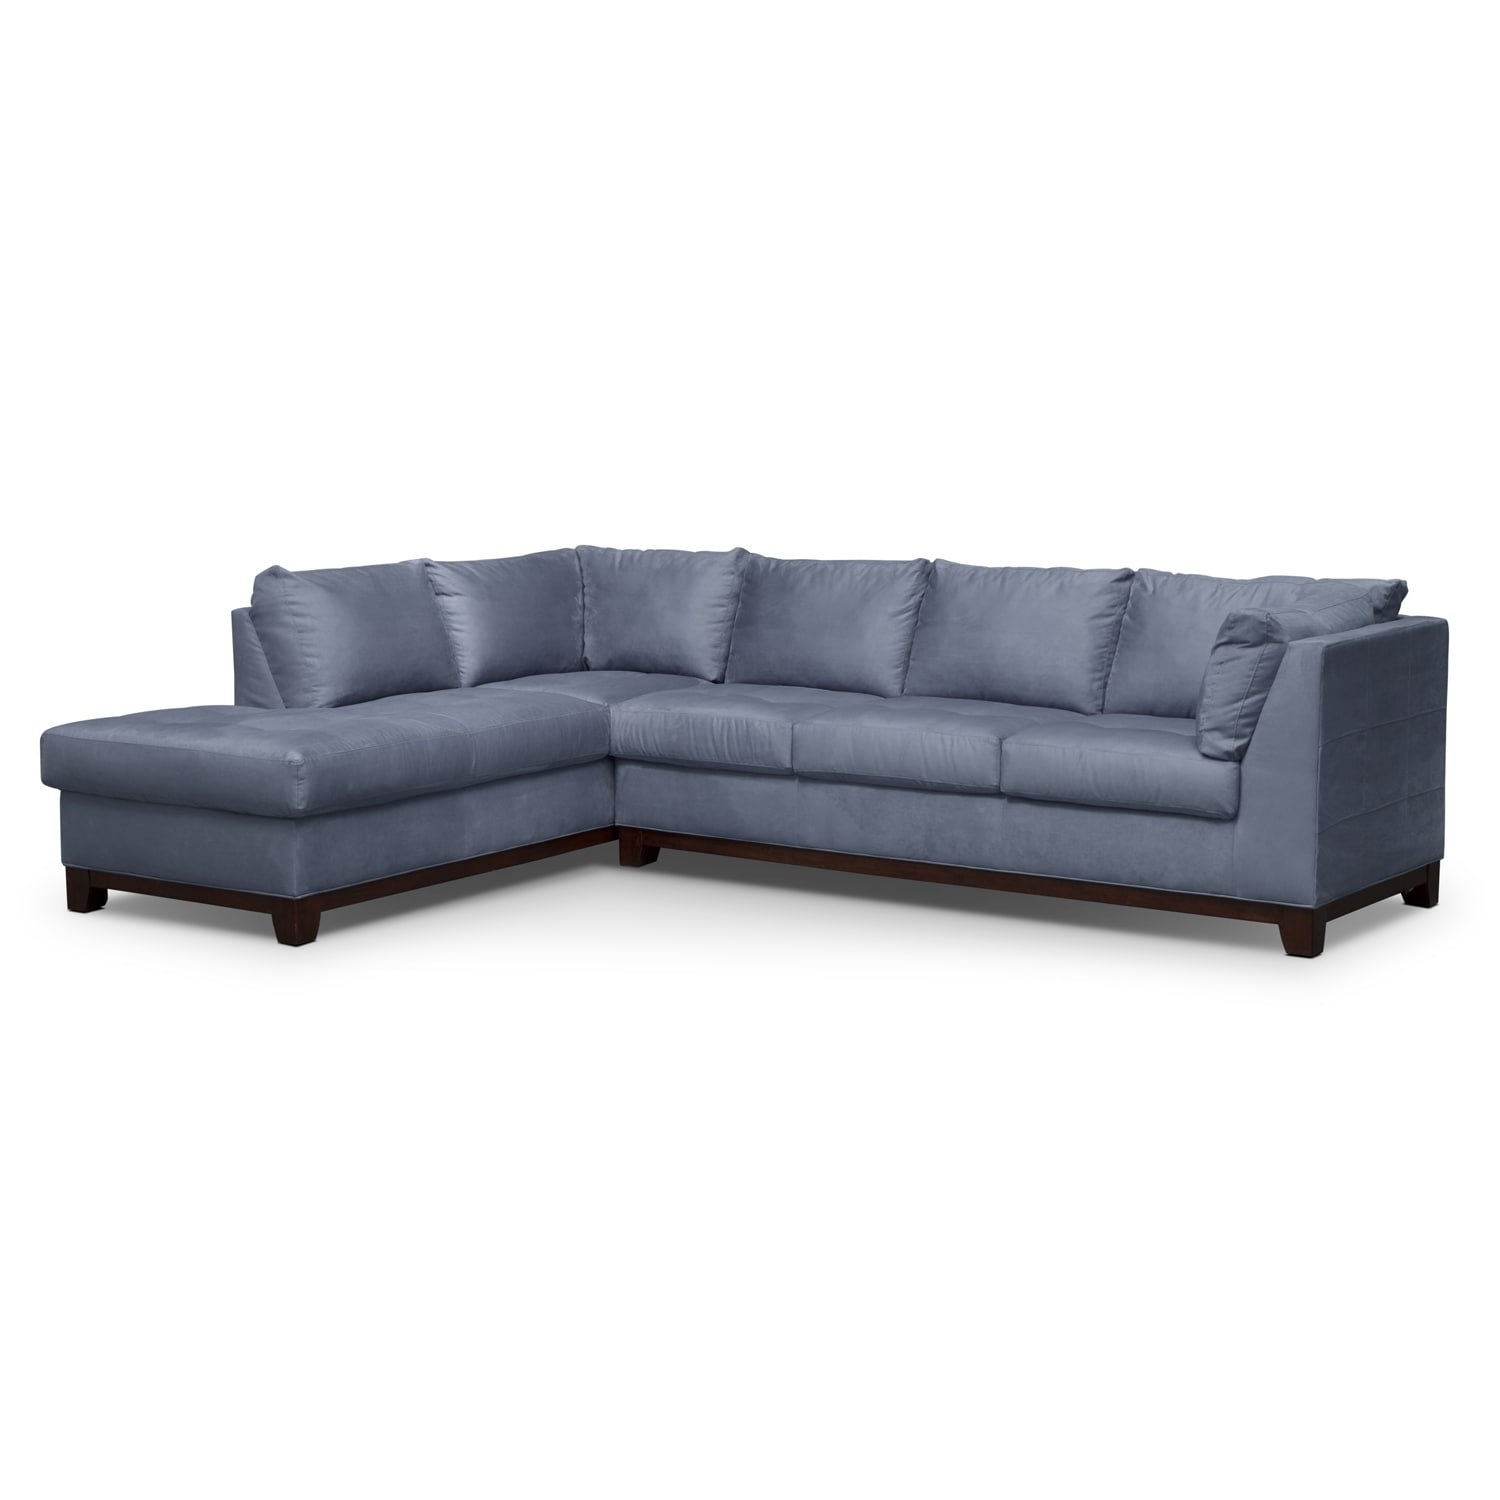 soho piece sectional with leftfacing chaise  steel by kroehler. soho piece sectional with leftfacing chaise  steel  american